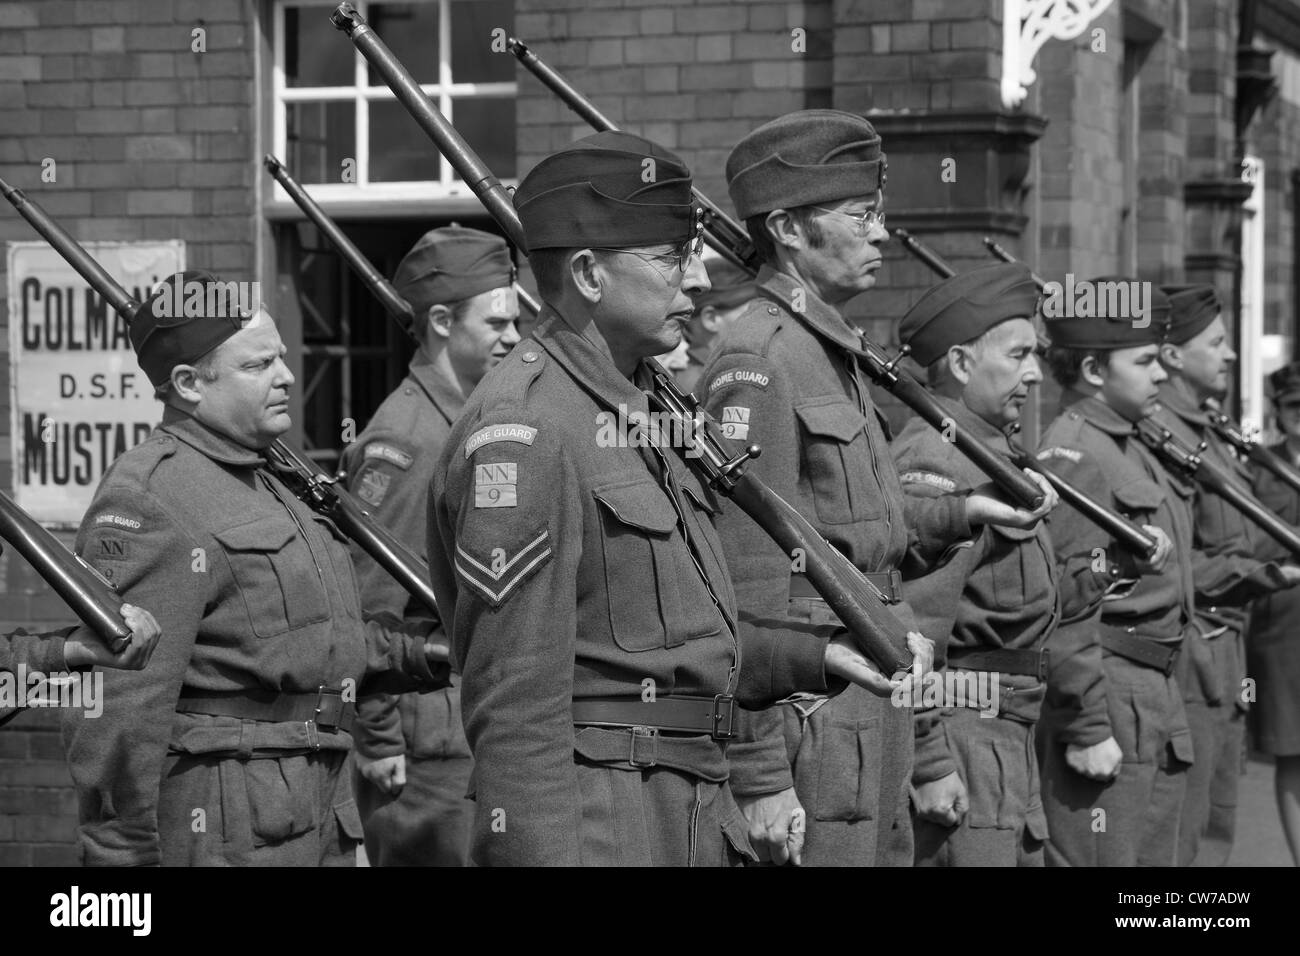 1940's Home Guard - Stock Image